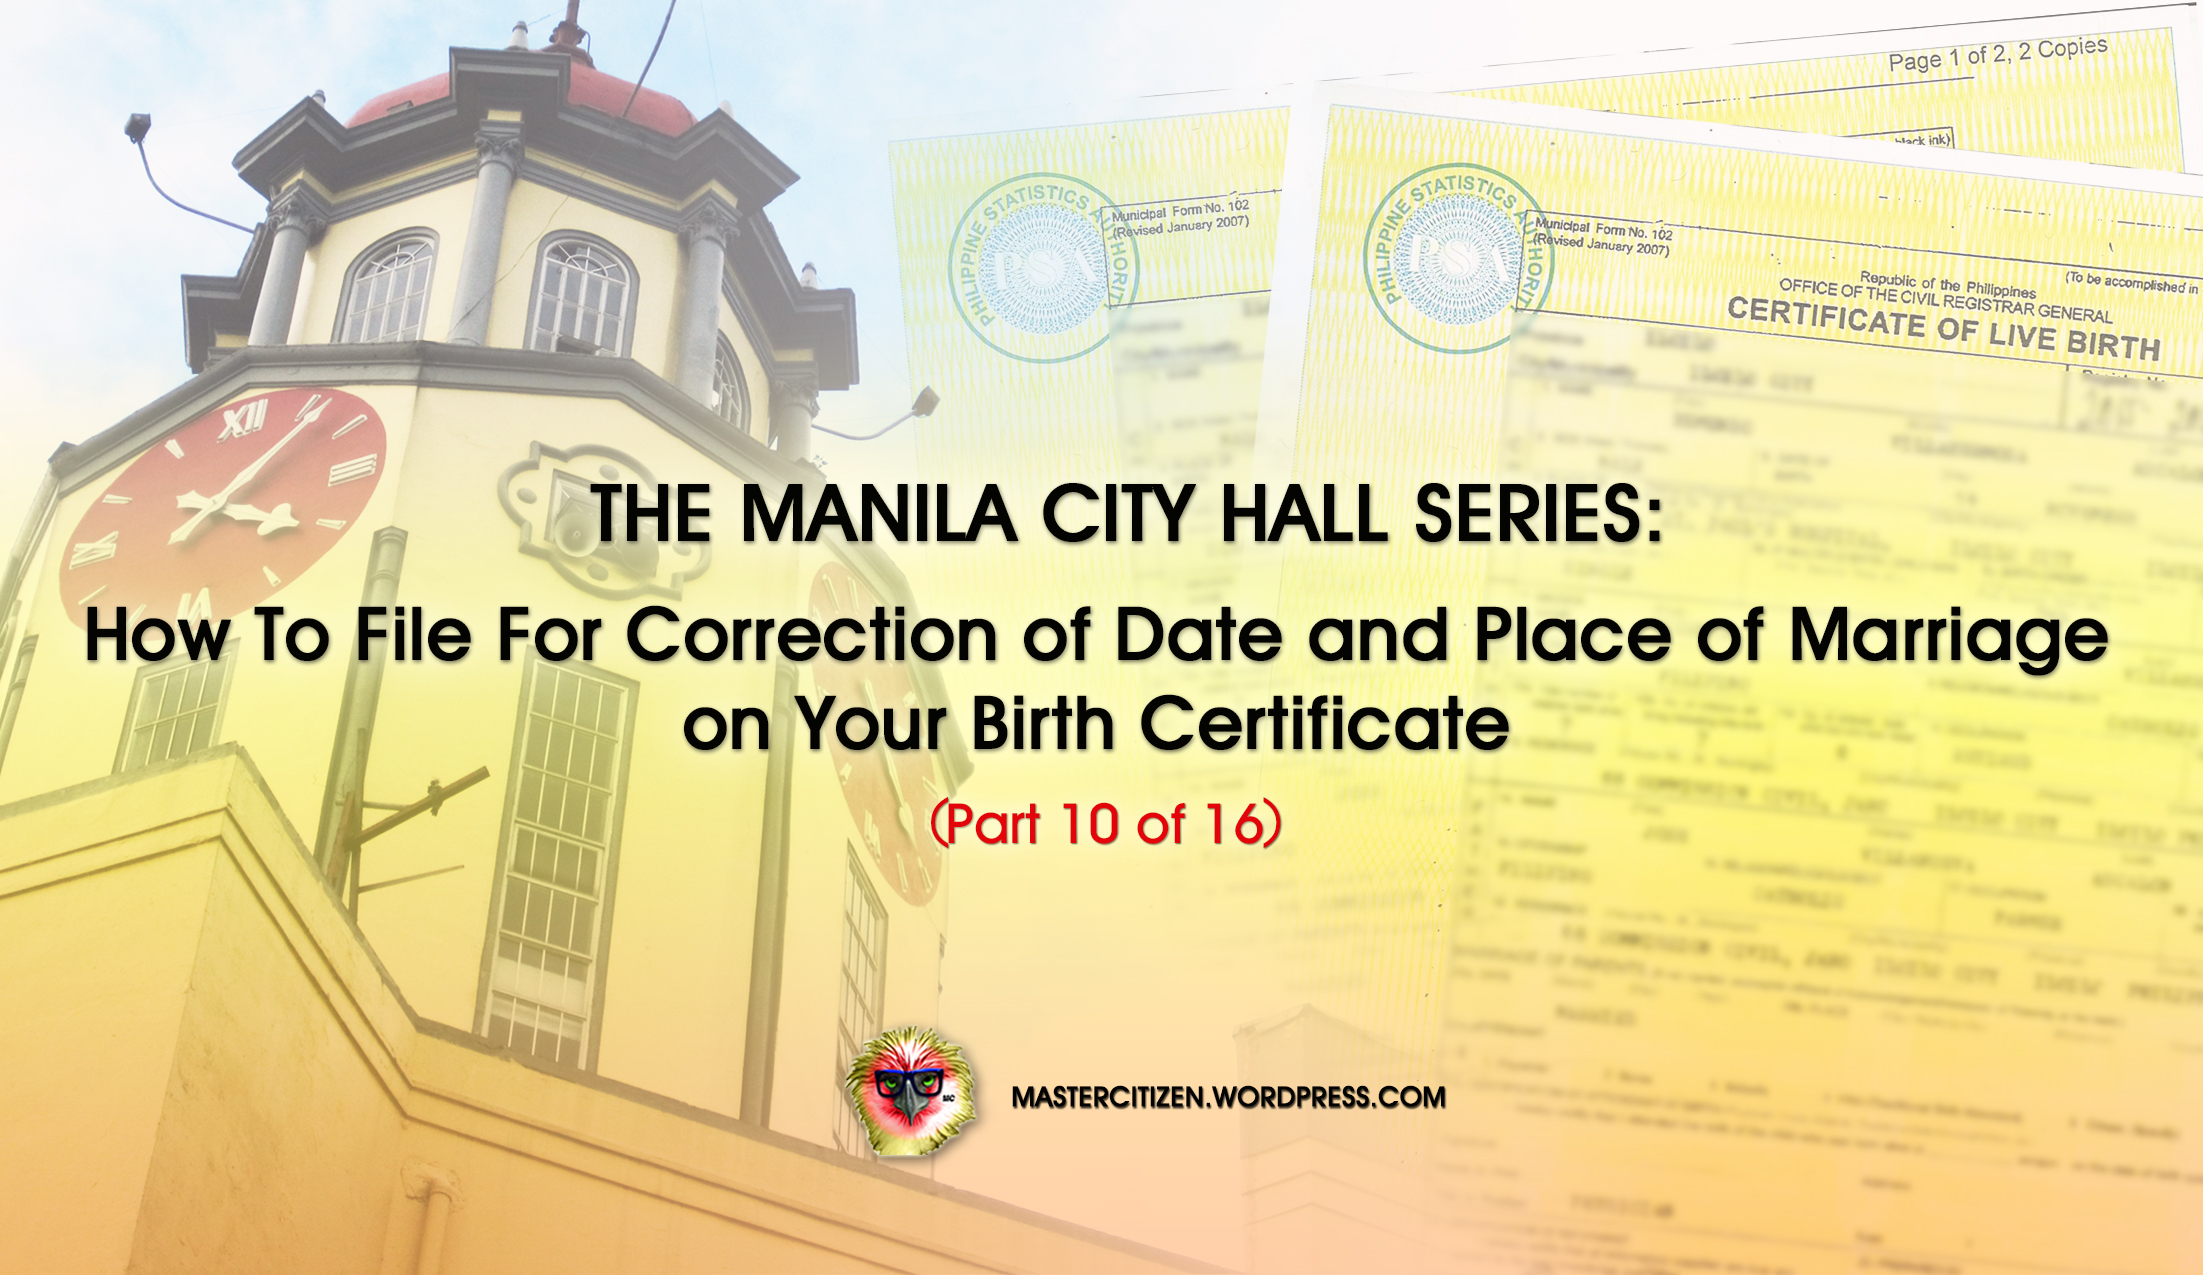 The manila city hall series how to file for correction of date the manila city hall series how to file for correction of date and place of marriage on your birth certificate part 10 of 16 mastercitizens blog aiddatafo Gallery